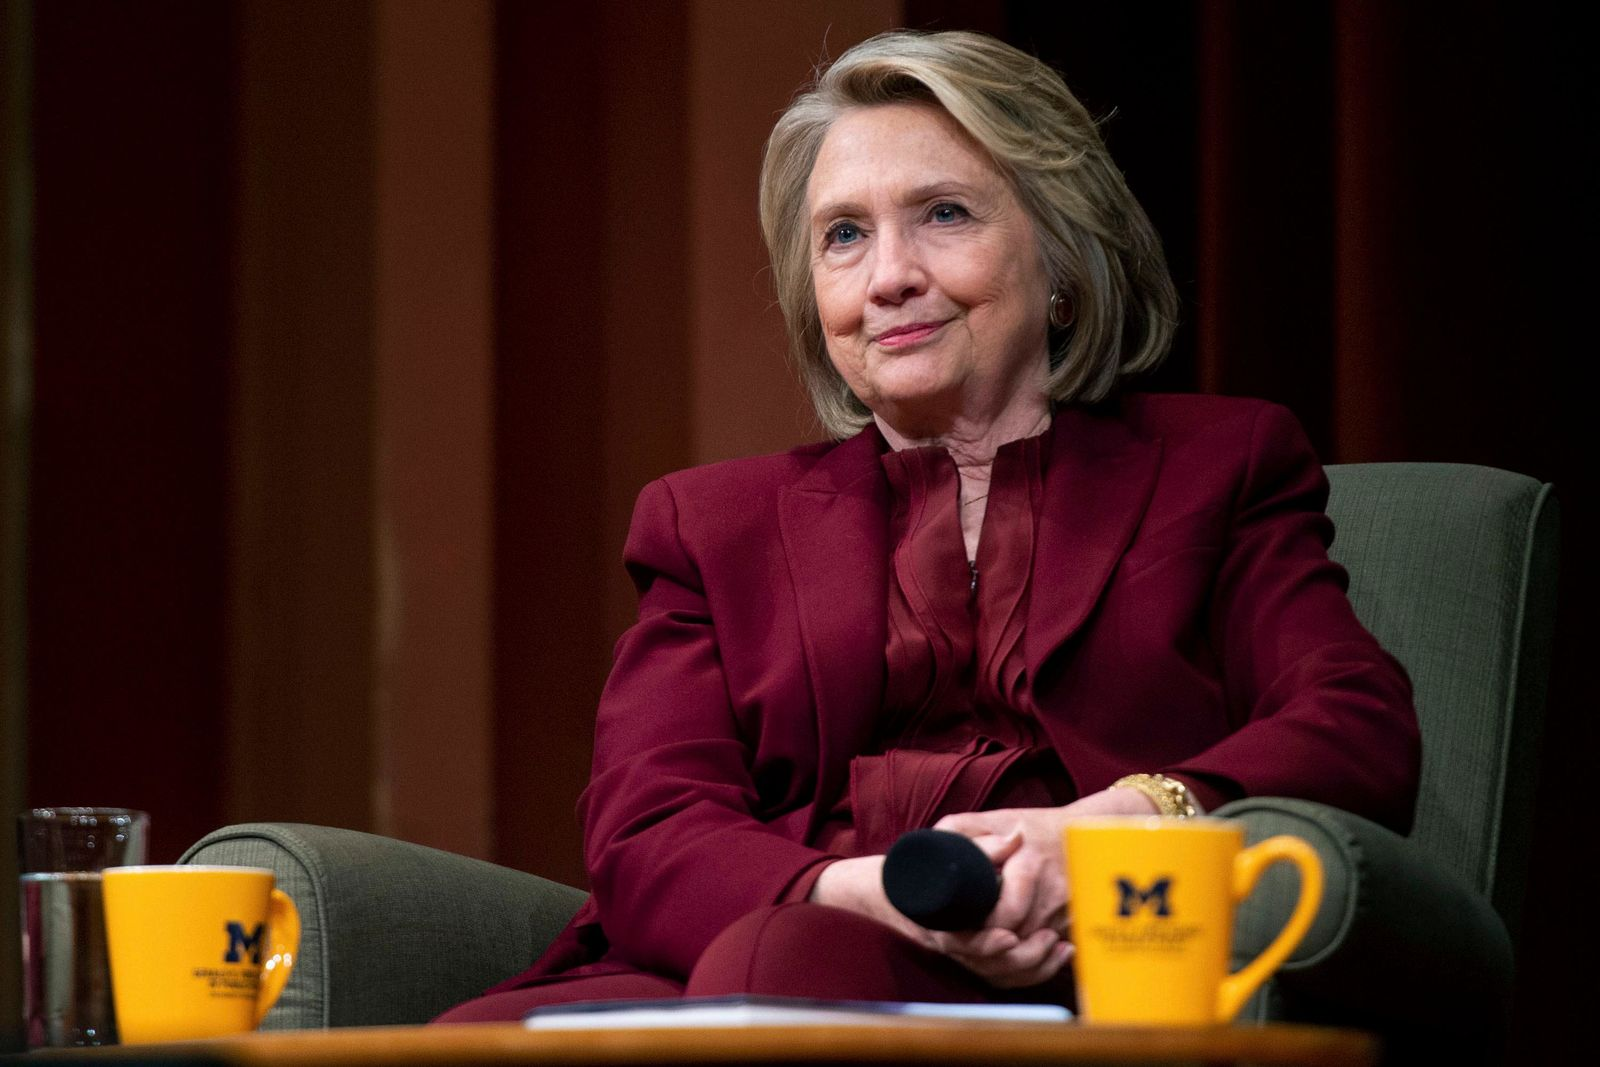 Hillary Clinton lectures on foreign policy at Rackham Auditorium, Thursday, Oct. 10, 2019 in Ann Arbor, Mich.(Jacob Hamilton/Ann Arbor News via AP)